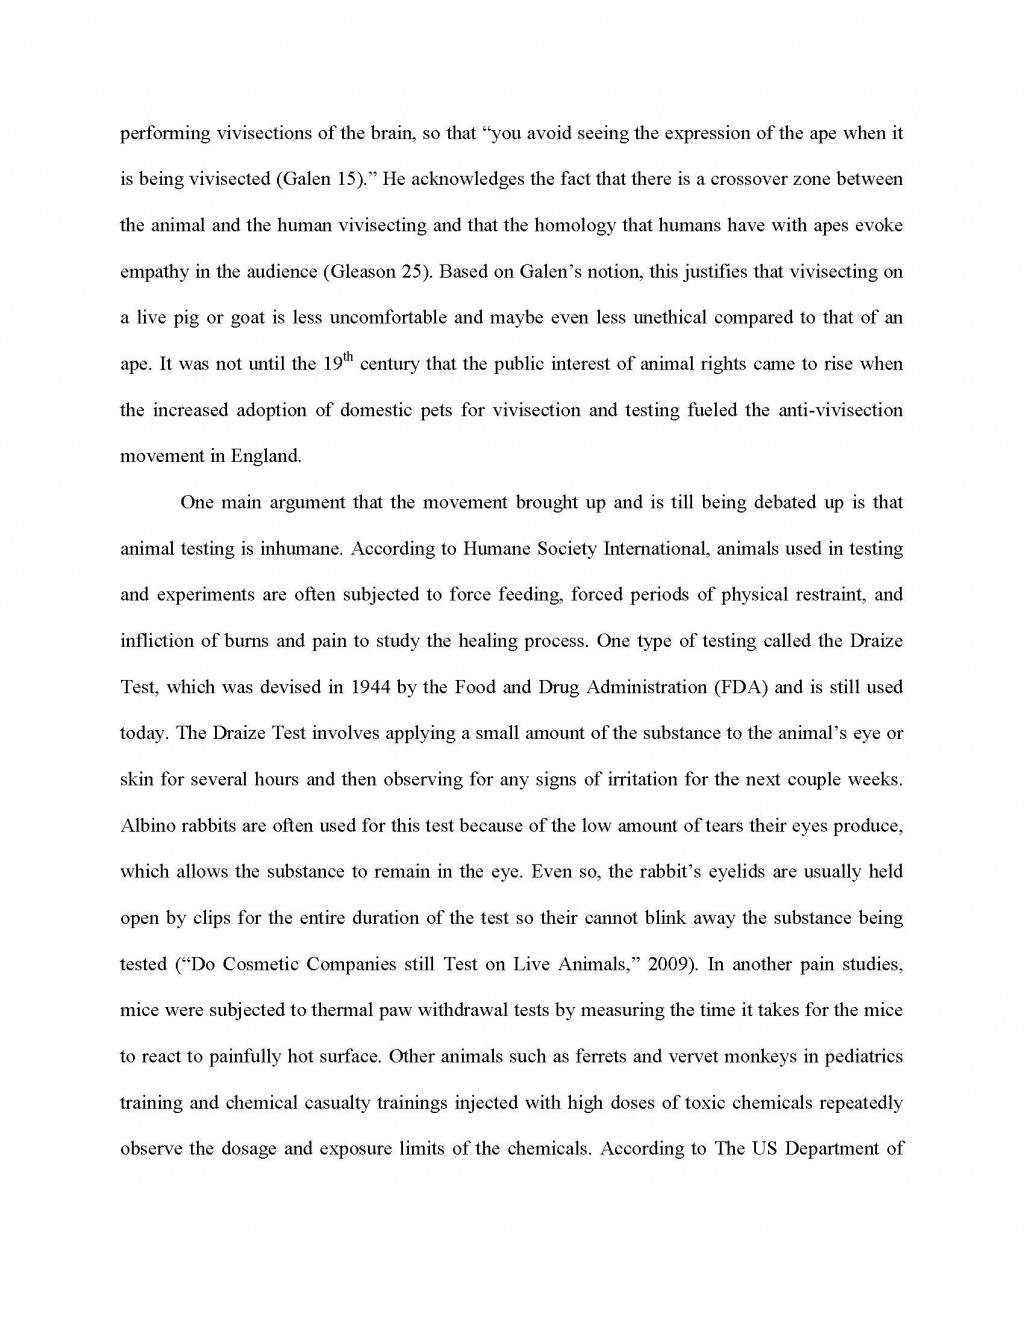 006 Research Paper Animal Testing Argumentative Essay Title Titles Outline Cosmetic Unique Experimentation Questions Large